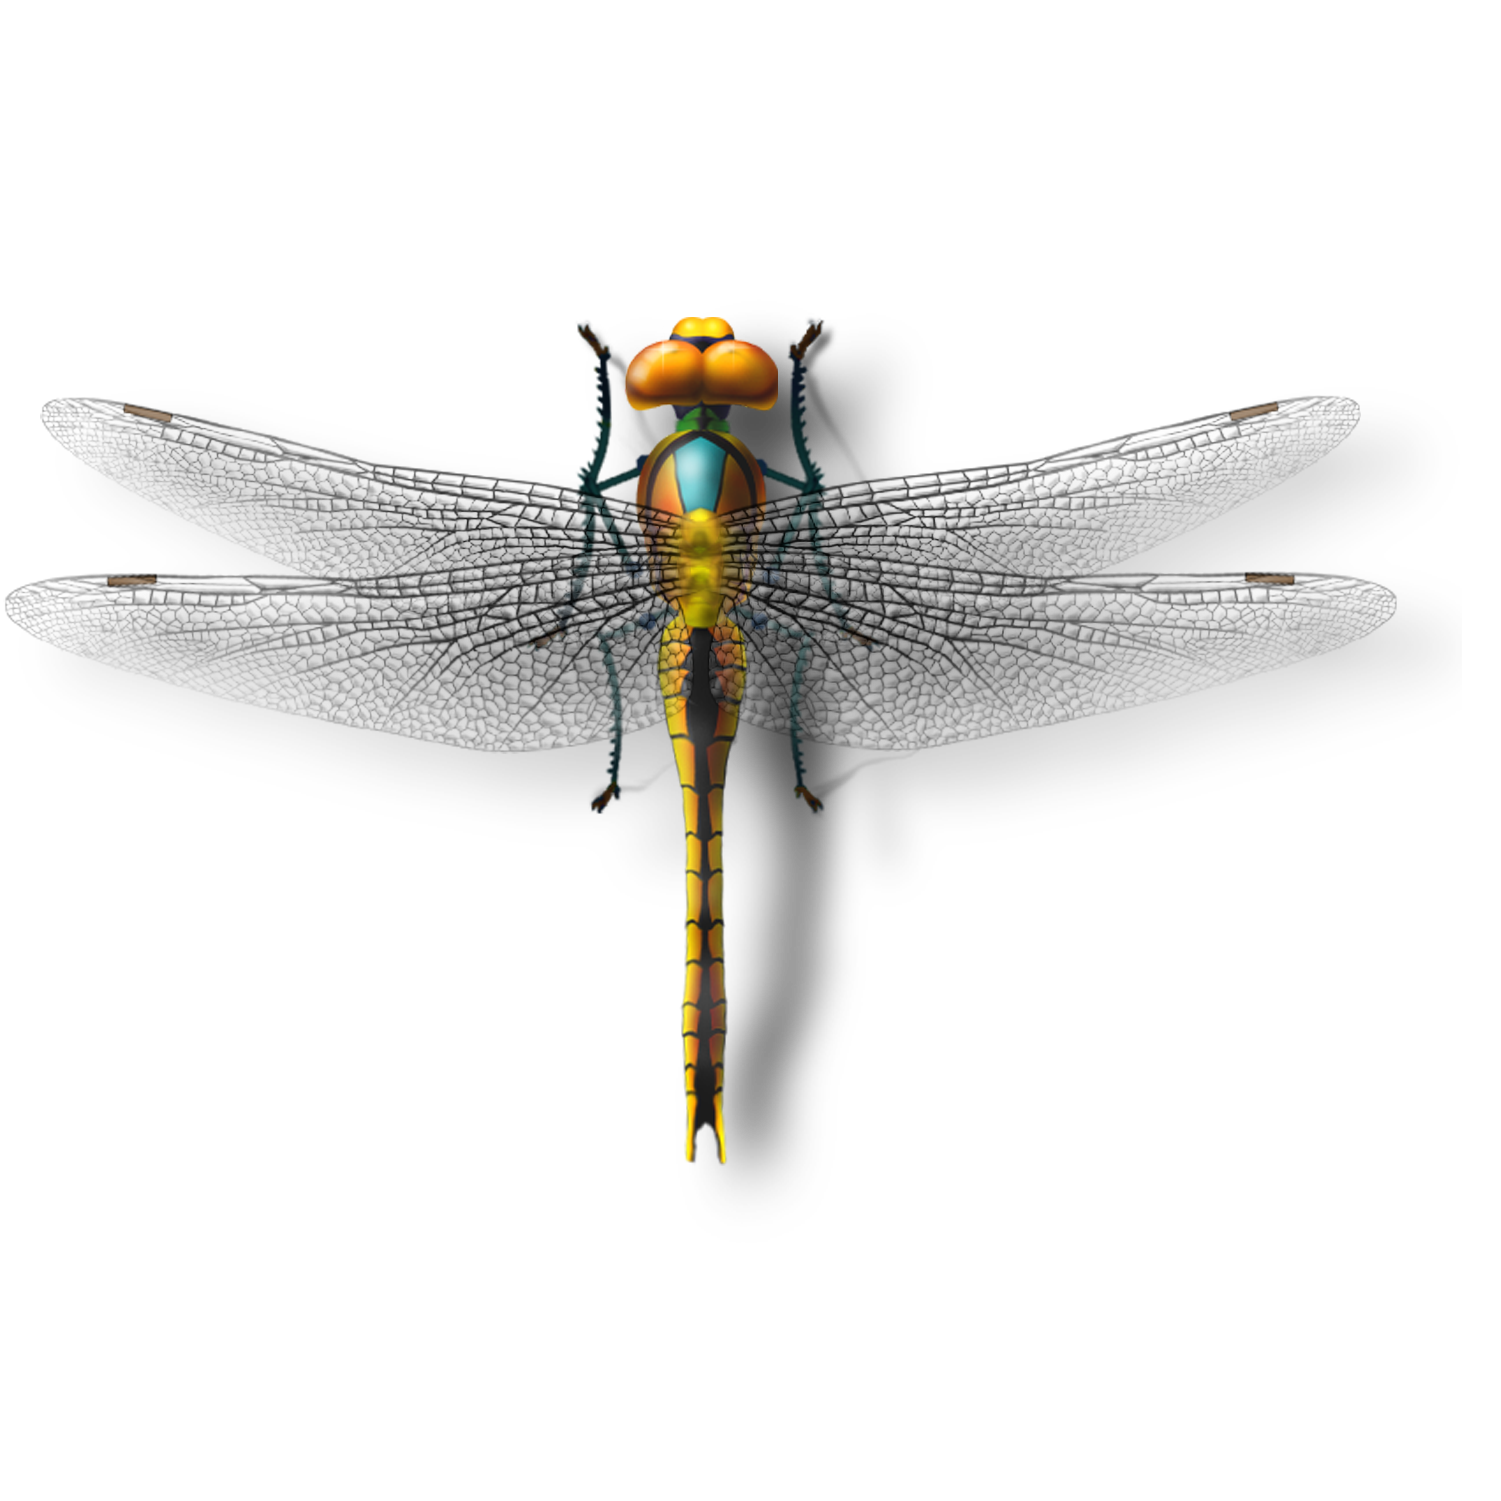 Dragonfly transparent photography. Insect download model transprent